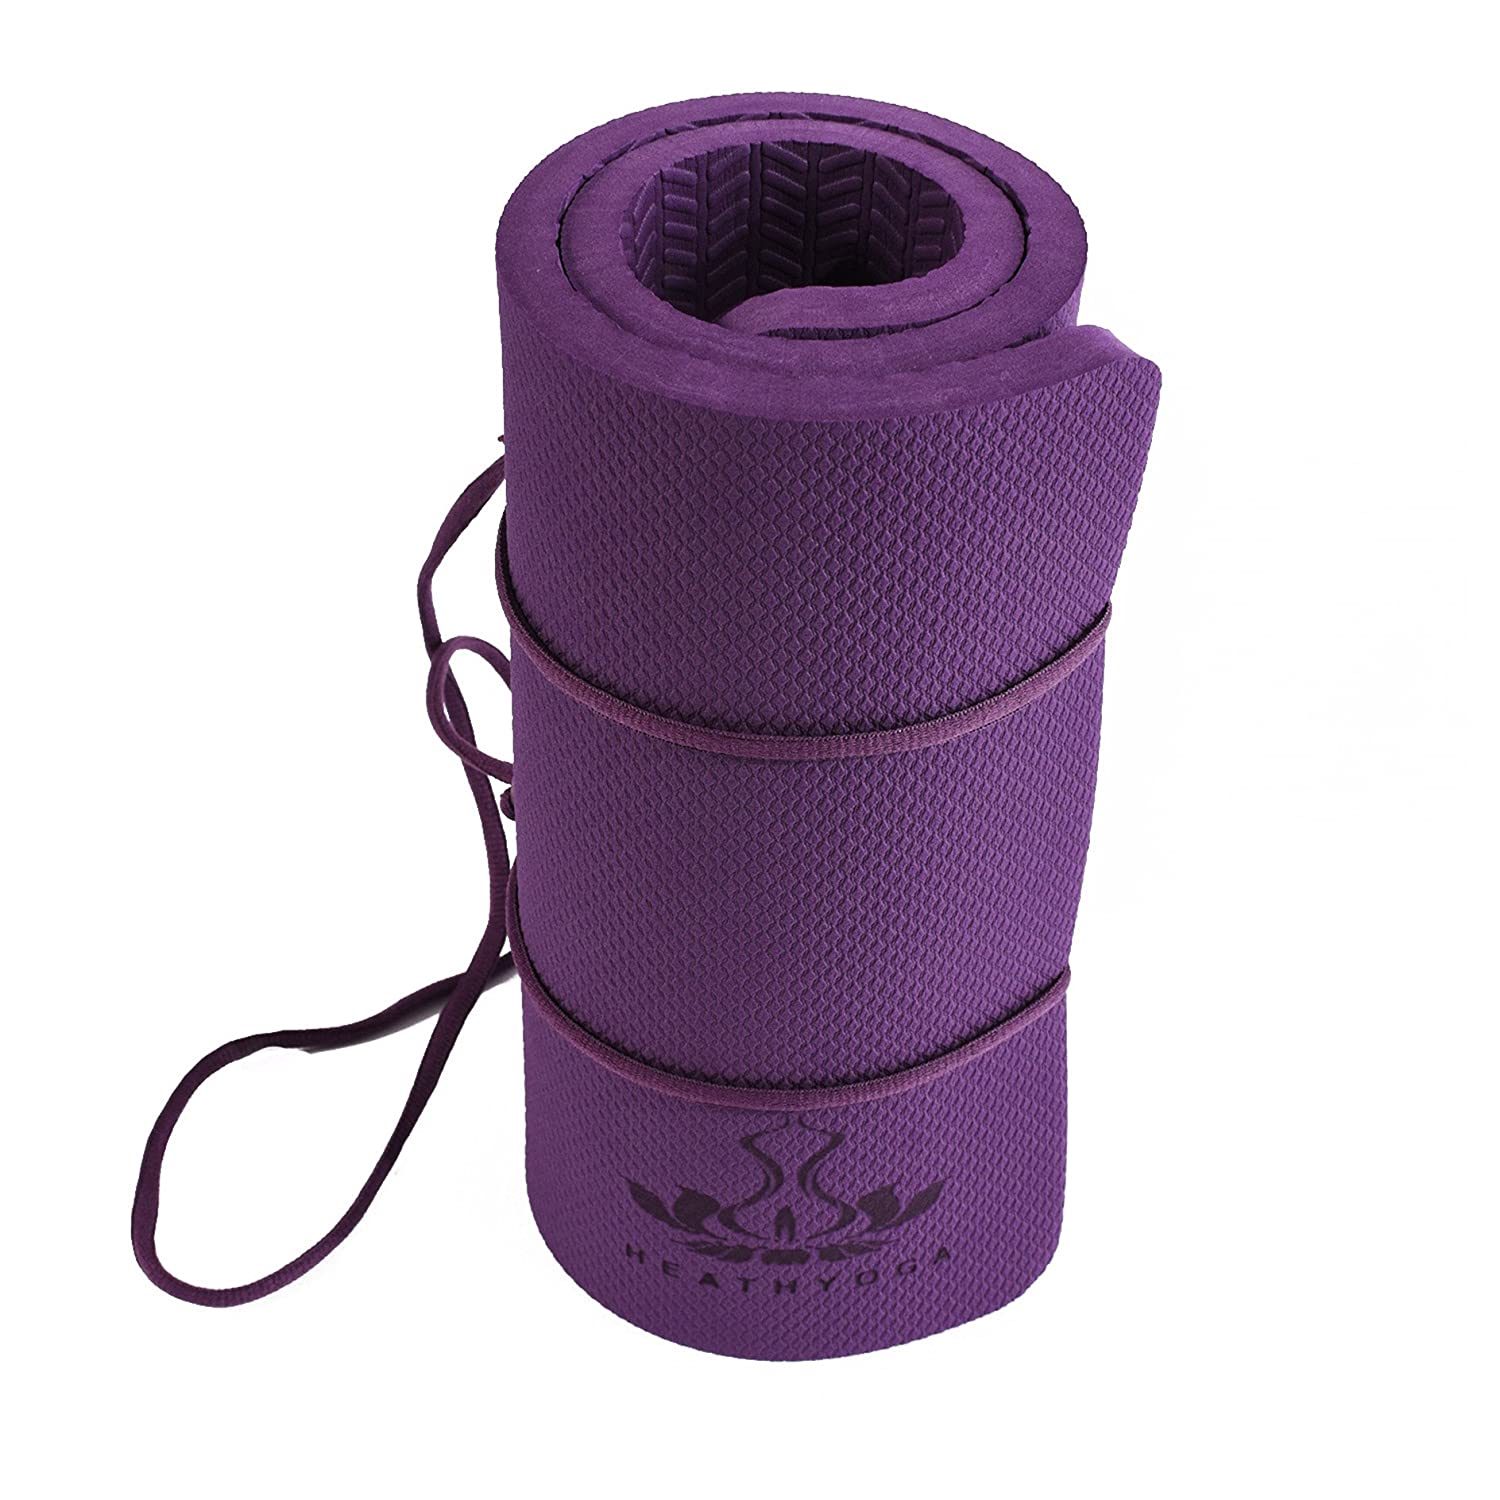 Great for Knees and Elbows While Doing Yoga and Floor Exercises 26x10x/½ Heathyoga Yoga Knee Pad Yard Work and Baby Bath Kneeling Pad for Gardening